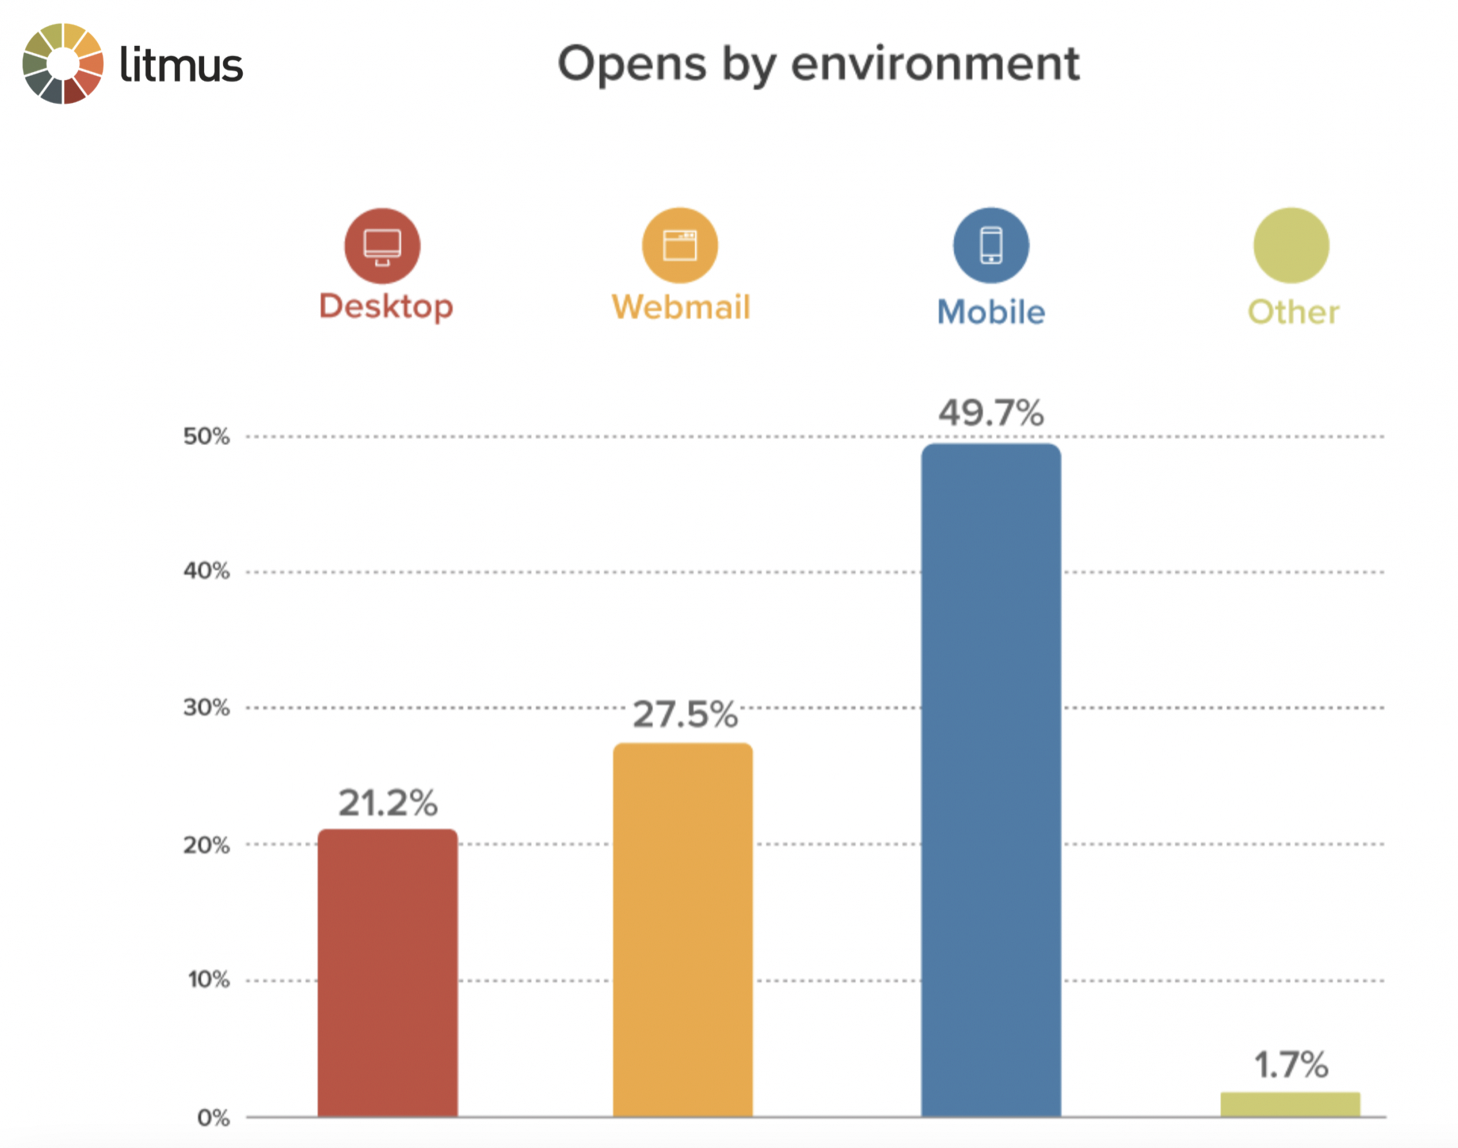 Responsive mobile emails compared to other devices